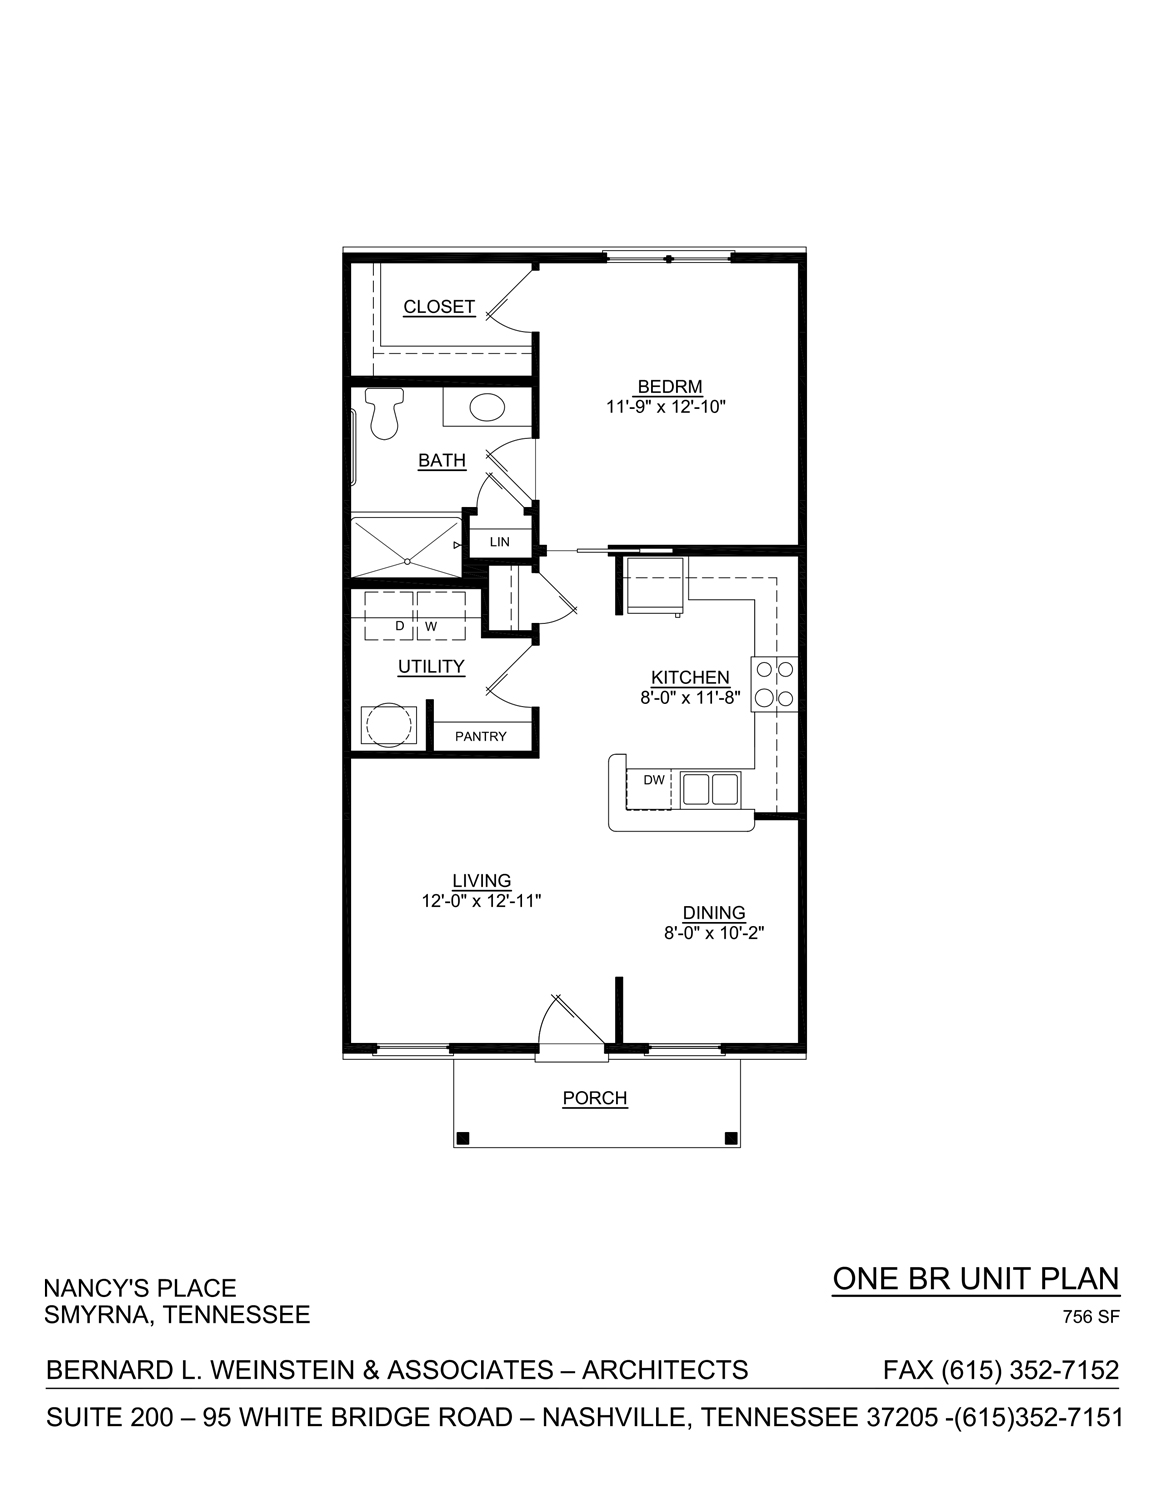 one bedroom nancy's place layout